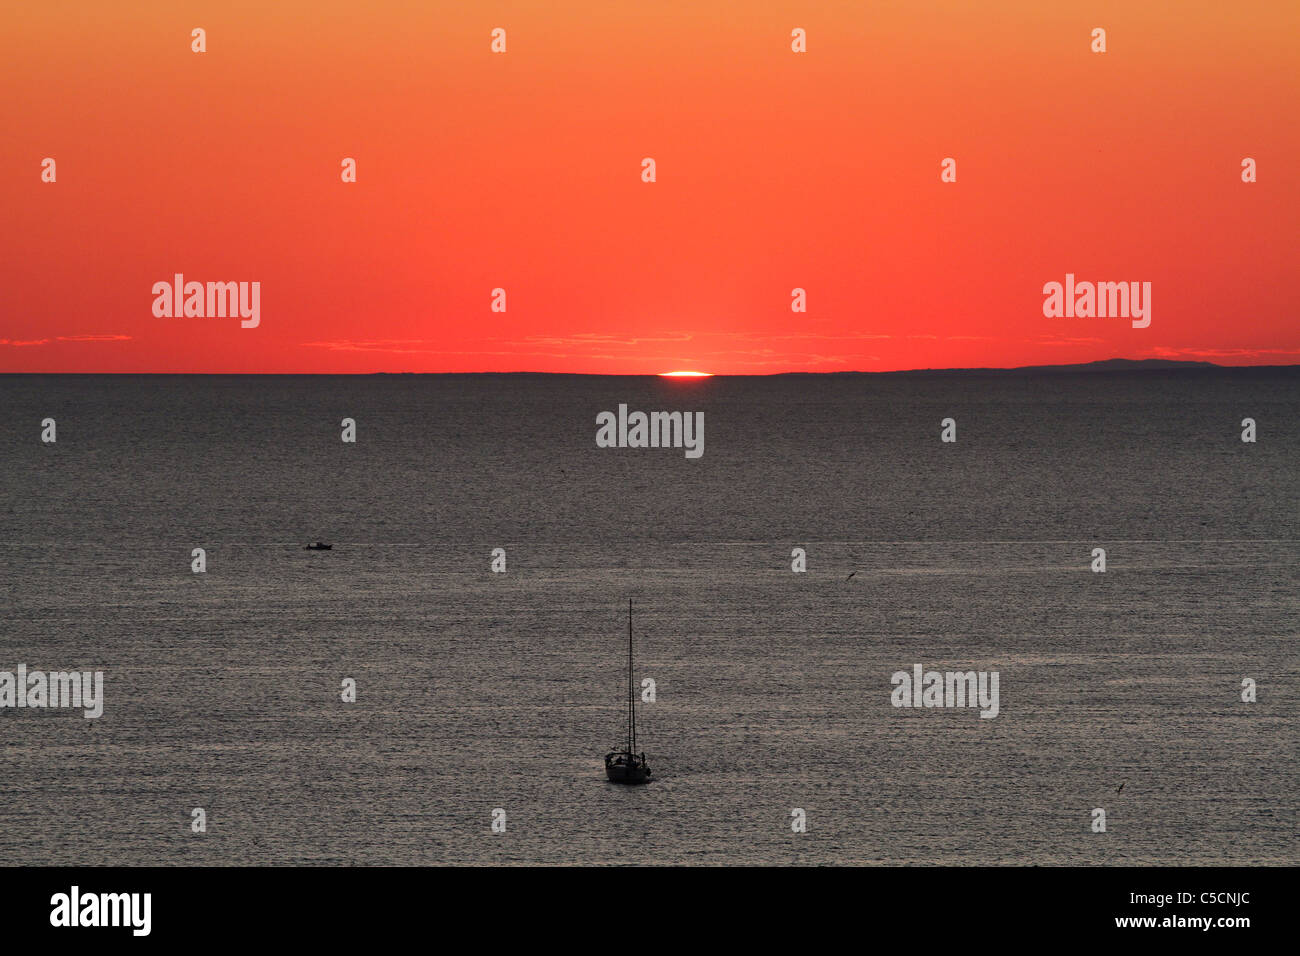 Sunset over the Adriatic Sea viewed from Zadar, Croatia - Stock Image